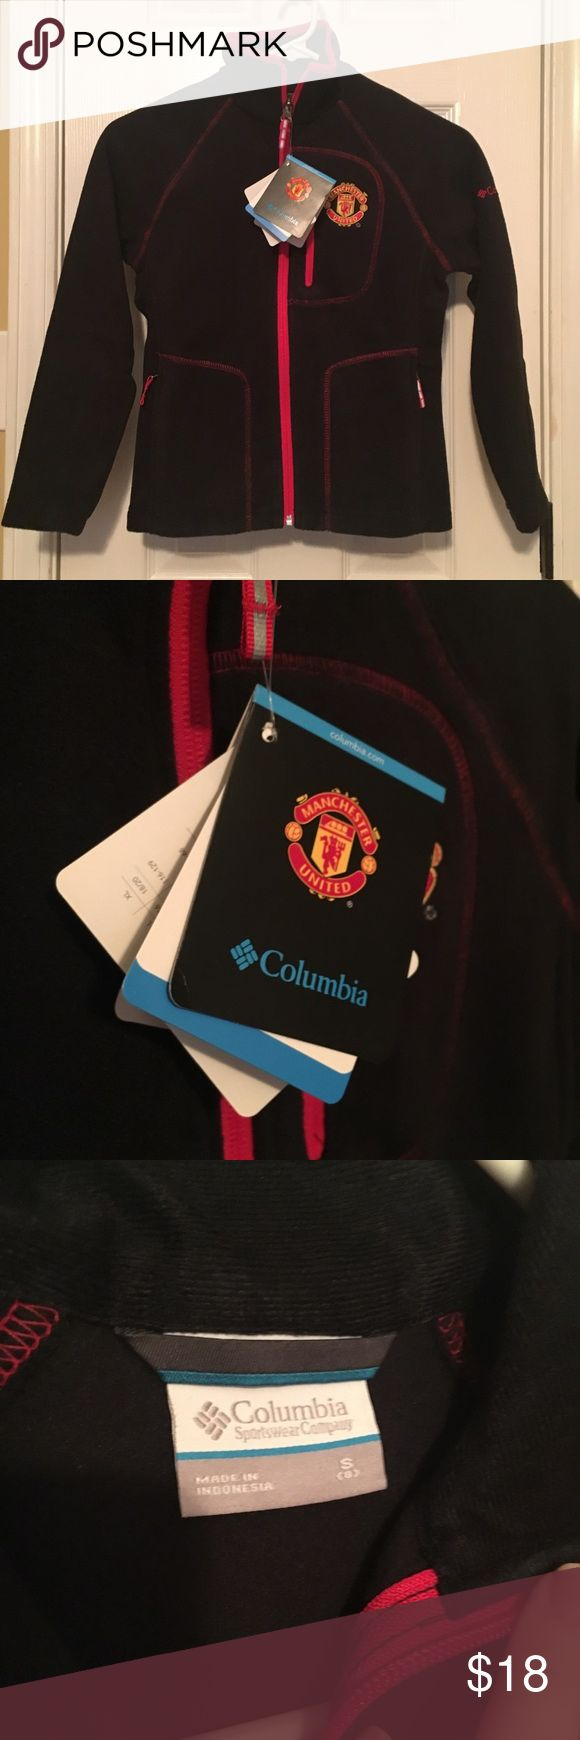 Kids Manchester United Columbia Fleece NWT Mint condition kids fleece with the Manchester United crest. Made by Columbia and great quality, brand new with tags. Currently sold out! Not the right size for my nephew. Columbia Shirts & Tops Sweatshirts & Hoodies